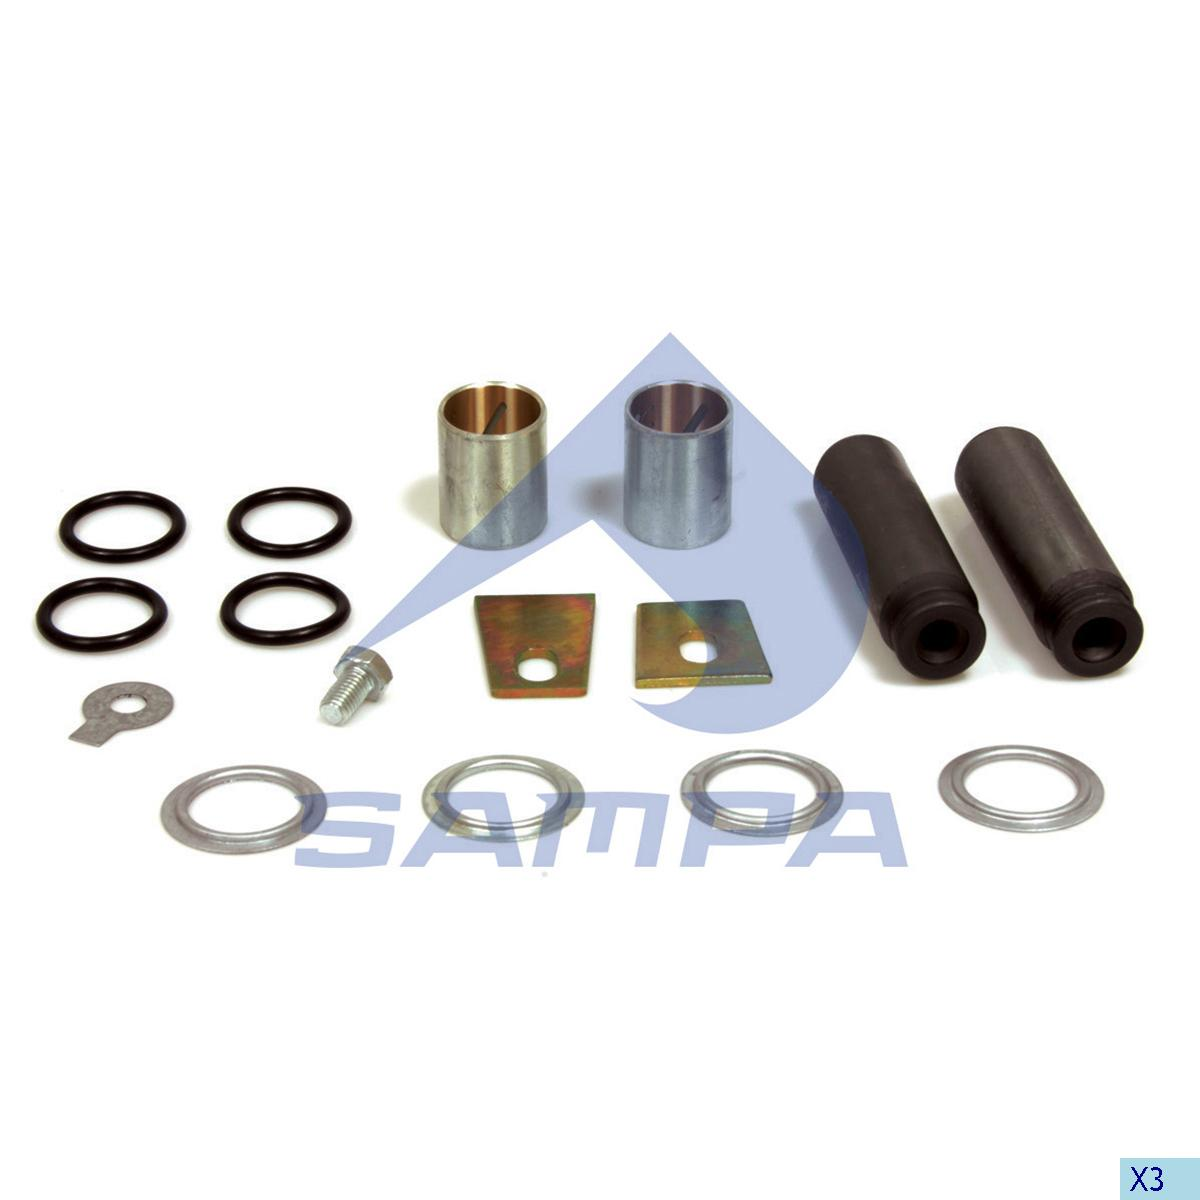 Repair Kit, Brake Shoe, Man, Brake